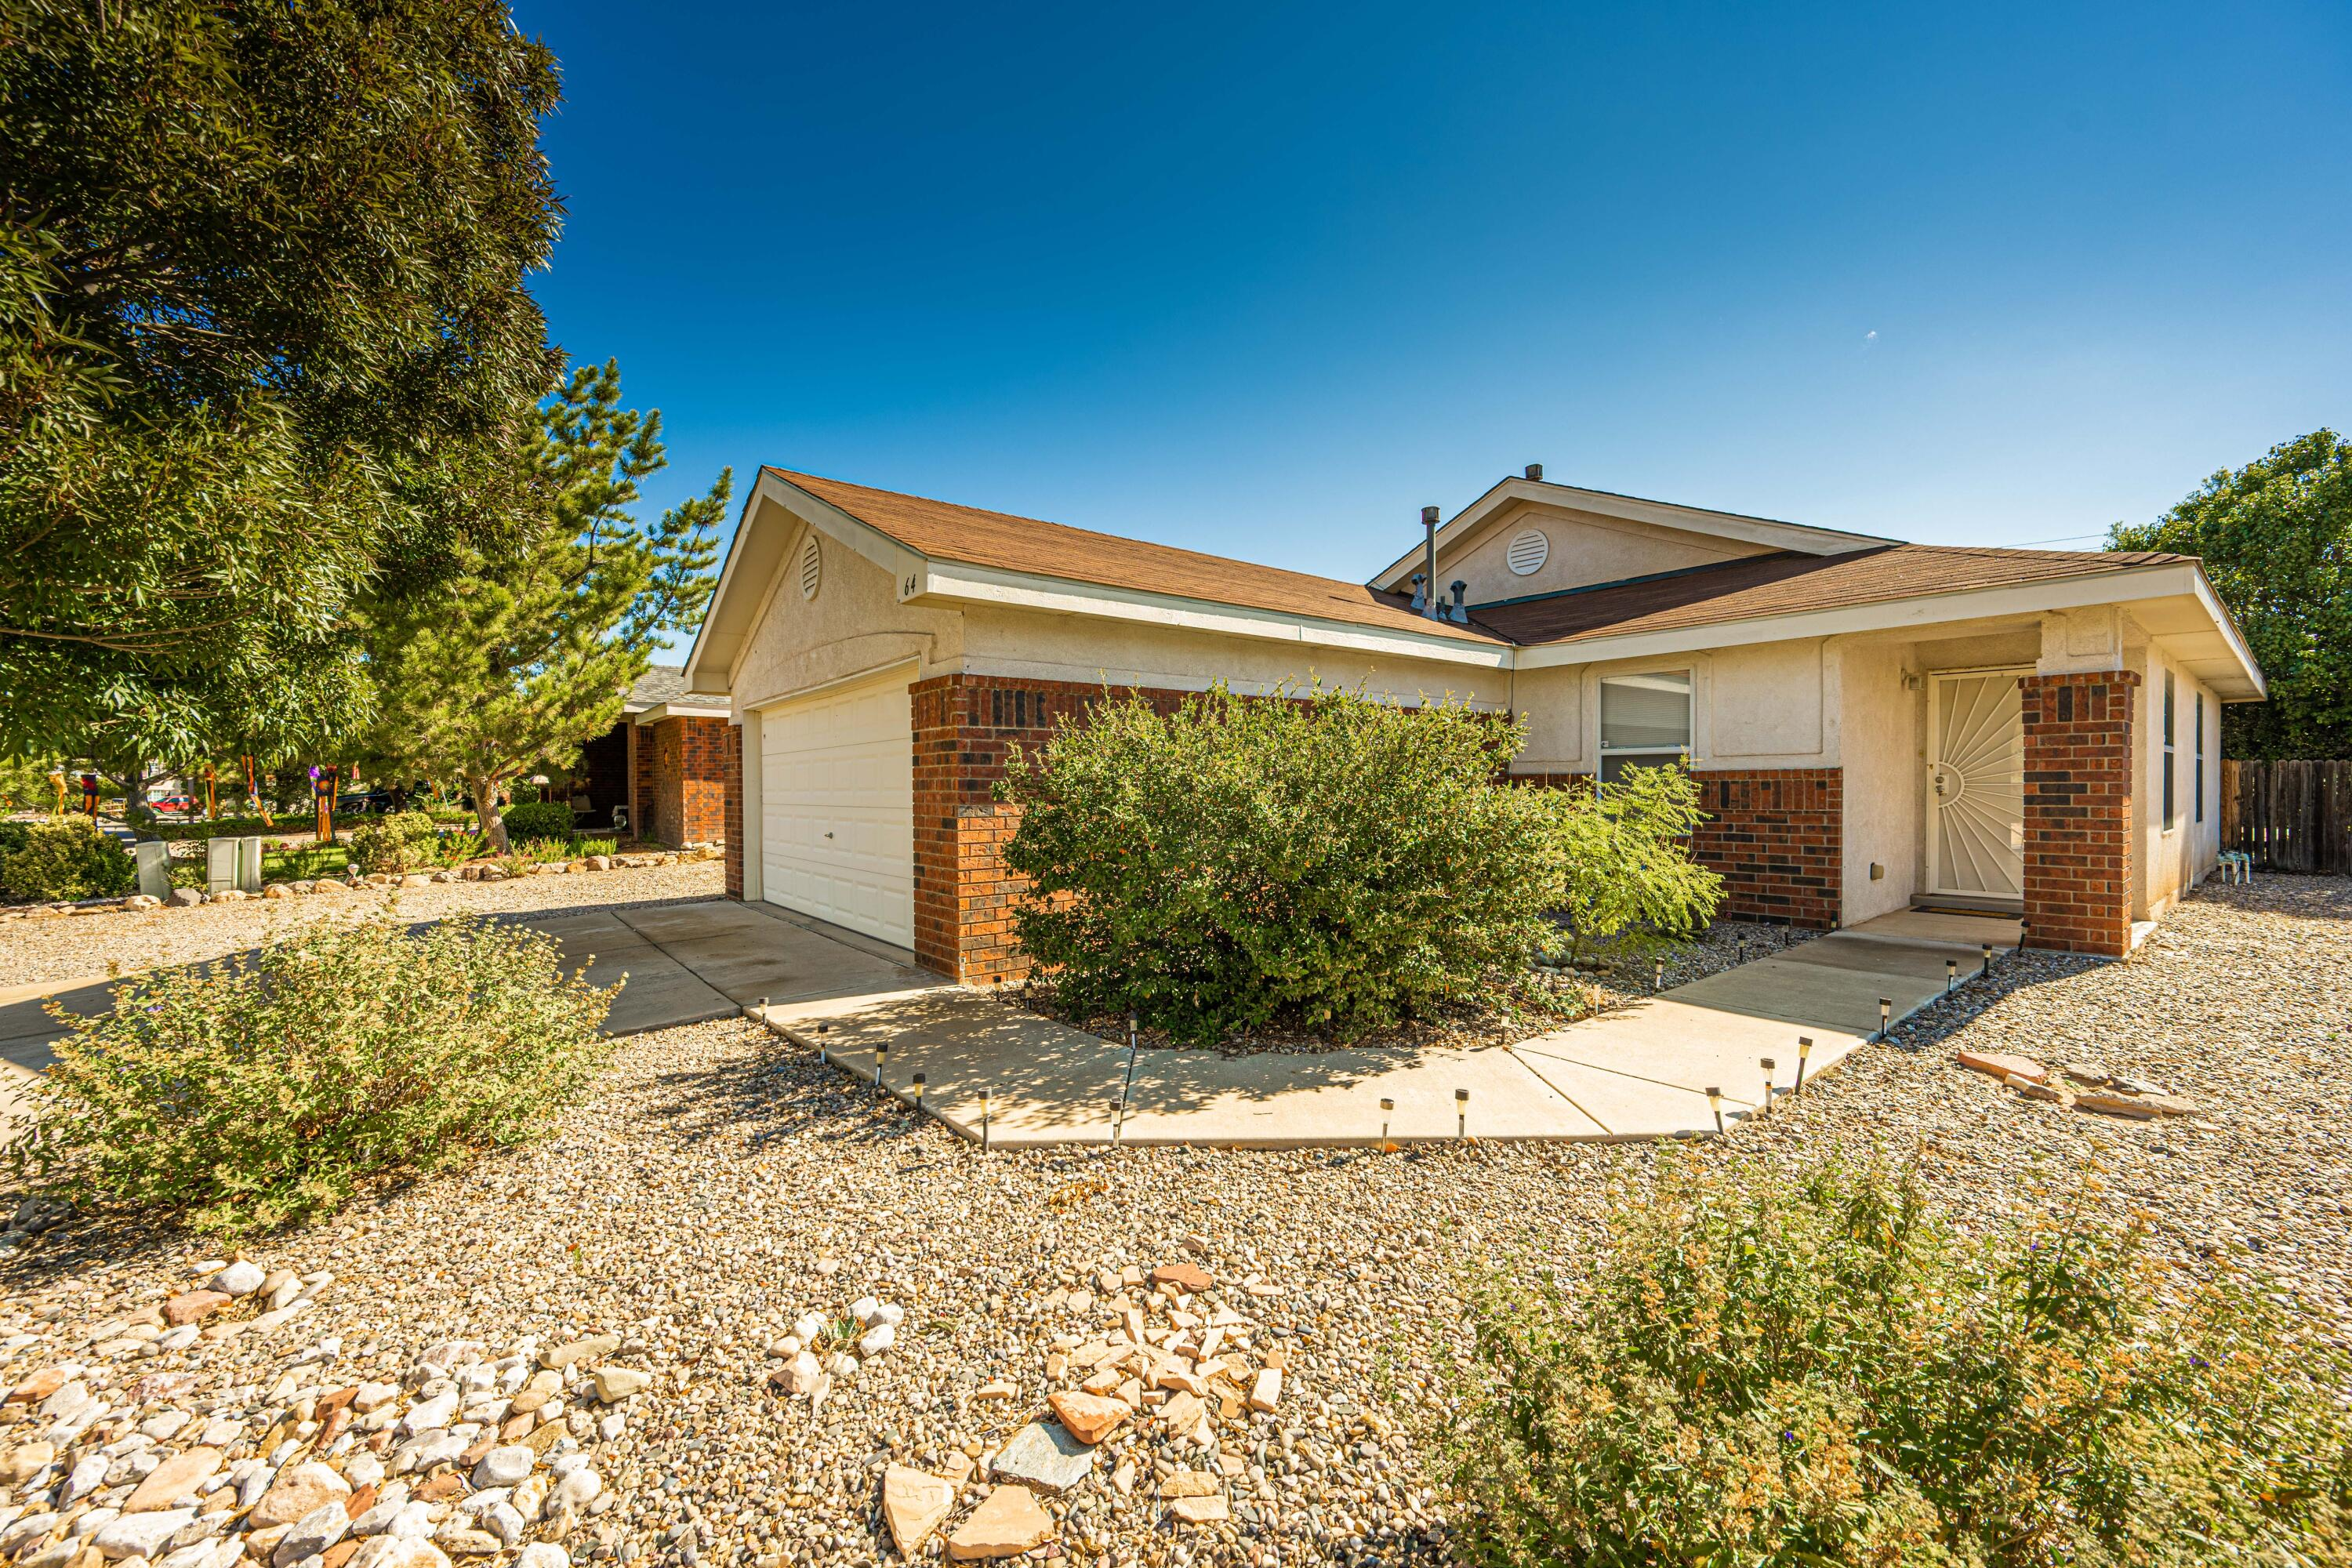 Cute home now available in the highly sought after neighborhood of Las Maravillas. Come see this three bedroom home with an open floor plan, covered patio and privacy! No homes neighboring the back yard!